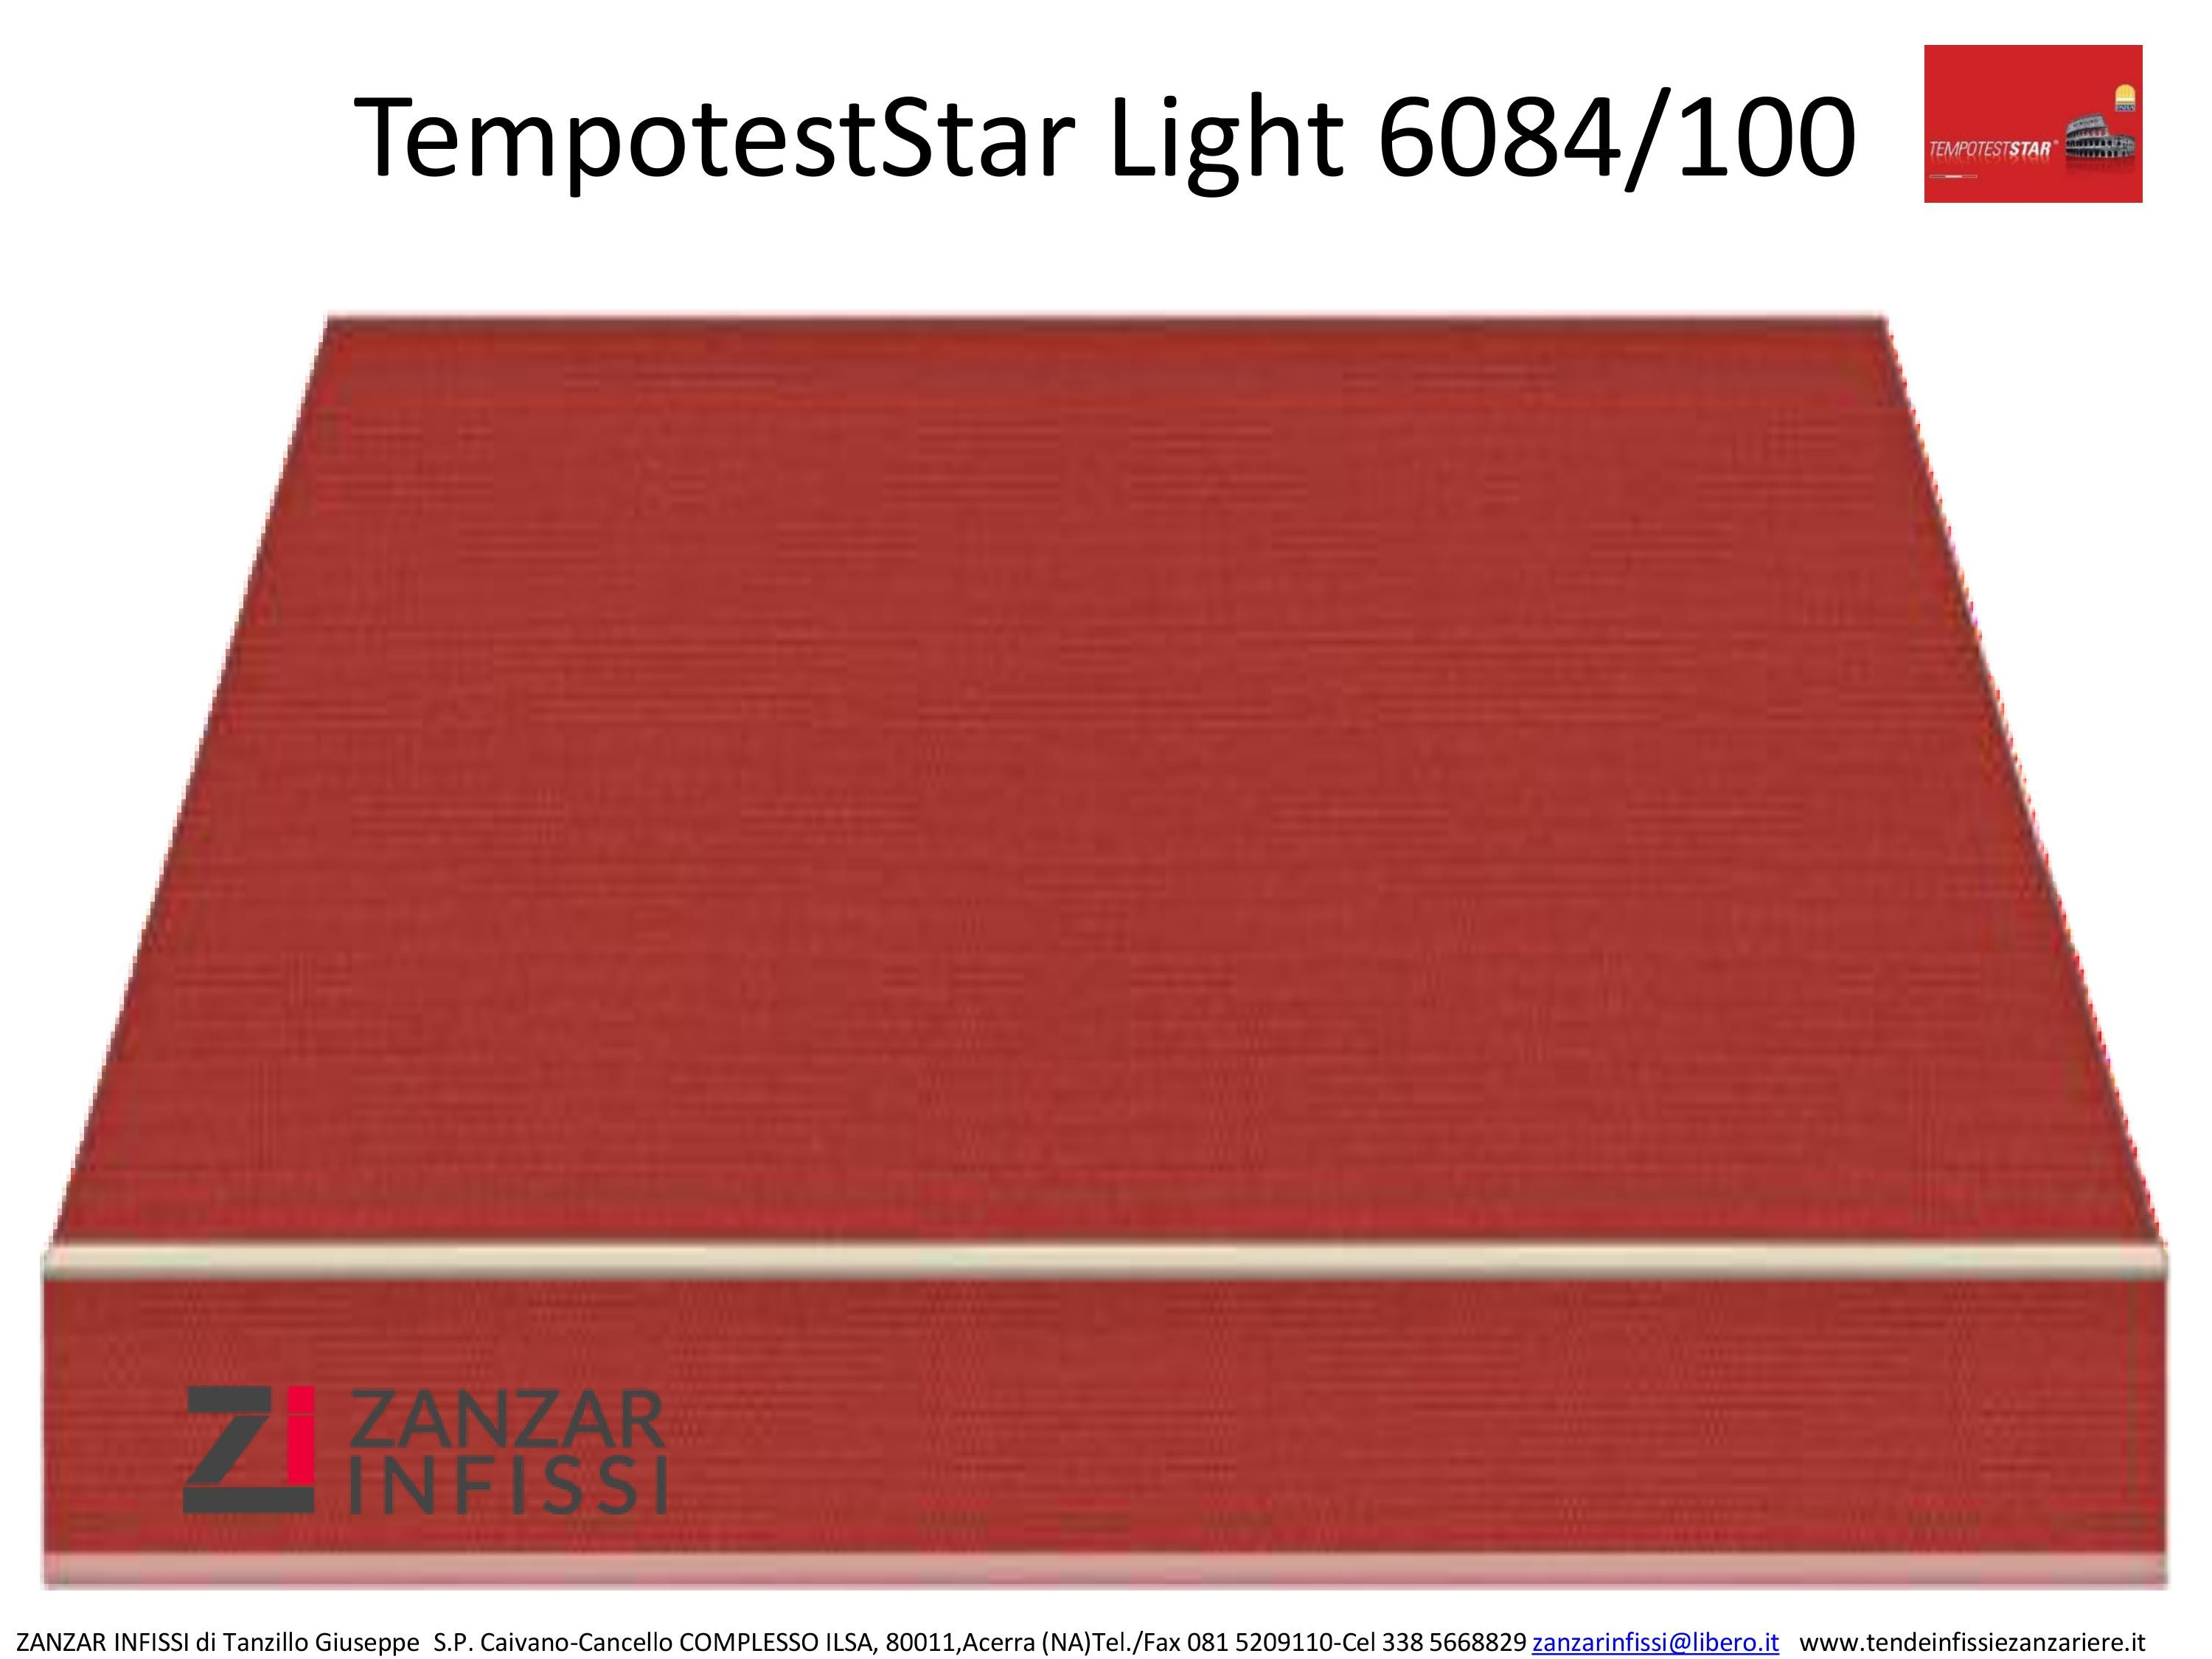 Tempotest star light 6084/100